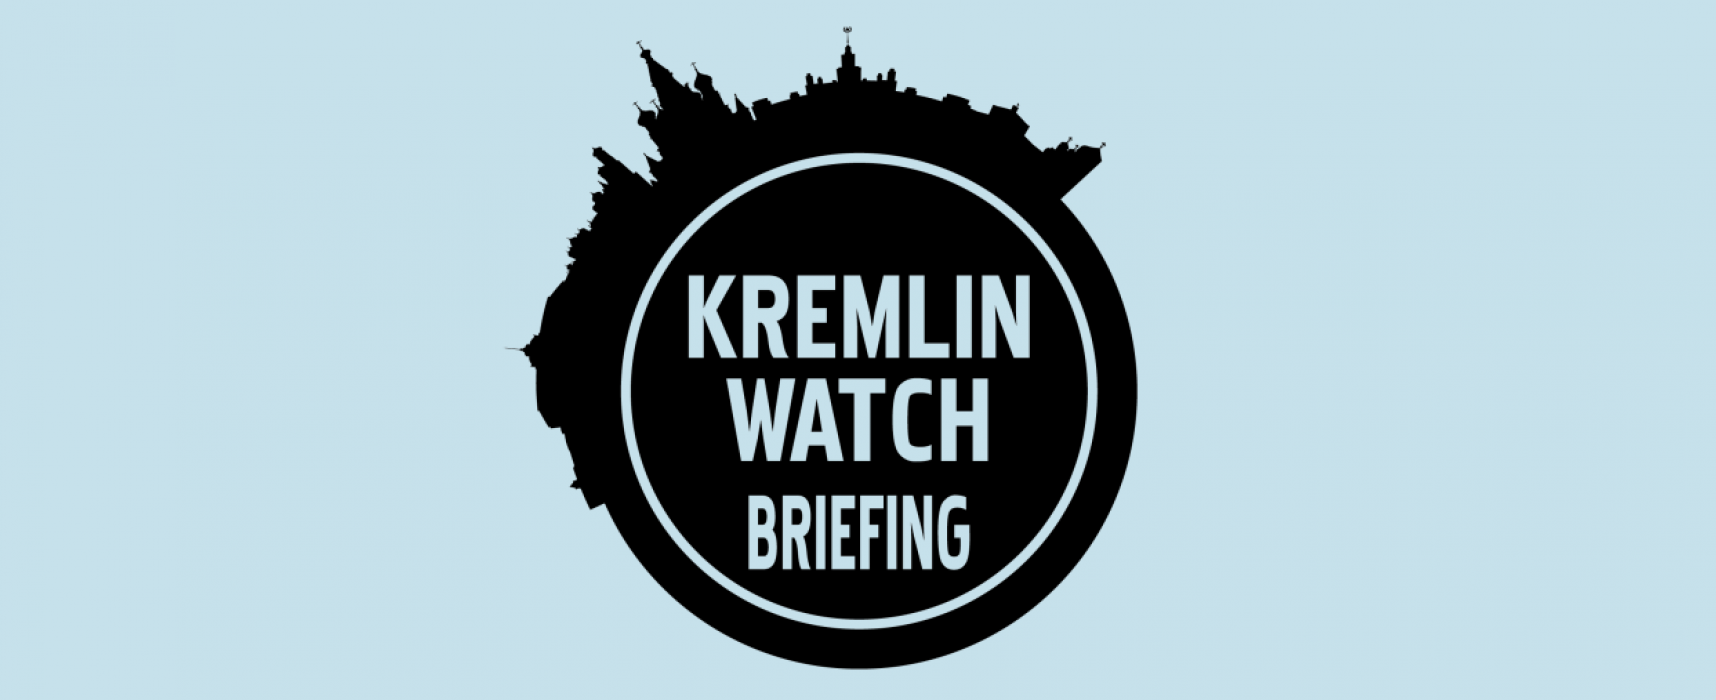 Kremlin Watch Briefing: The Trump team welcomed Russian disinformation